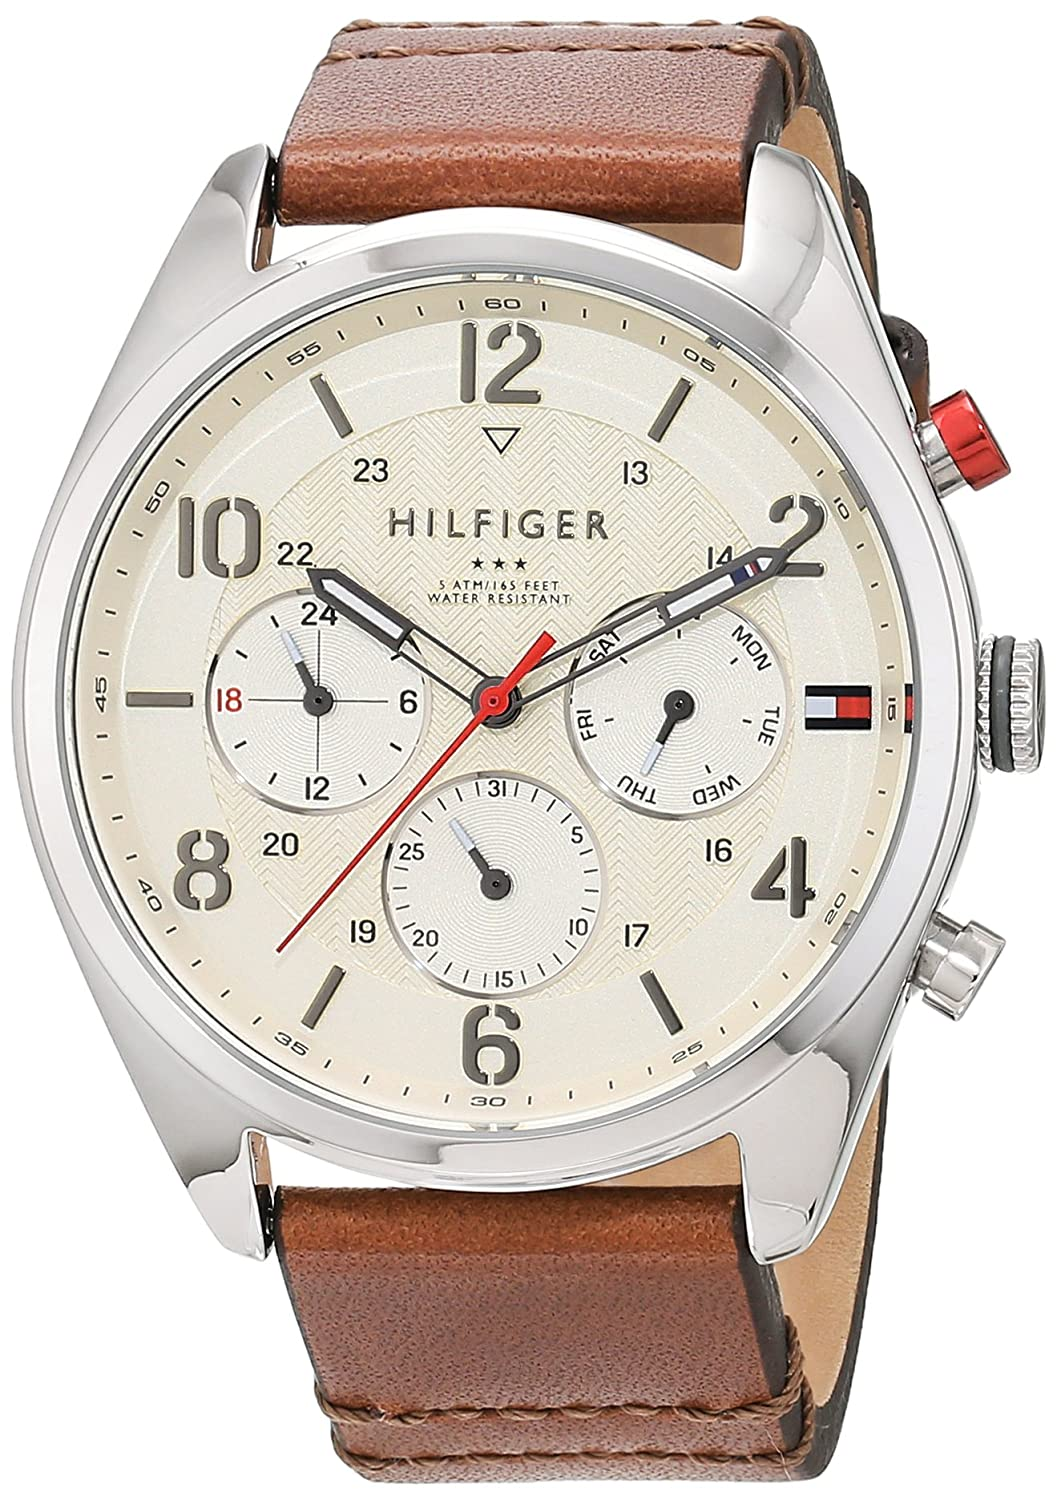 Amazon.com: Tommy Hilfiger Mens 1791208 Casual Sport Watch with Brown Band: Tommy Hilfiger: Watches